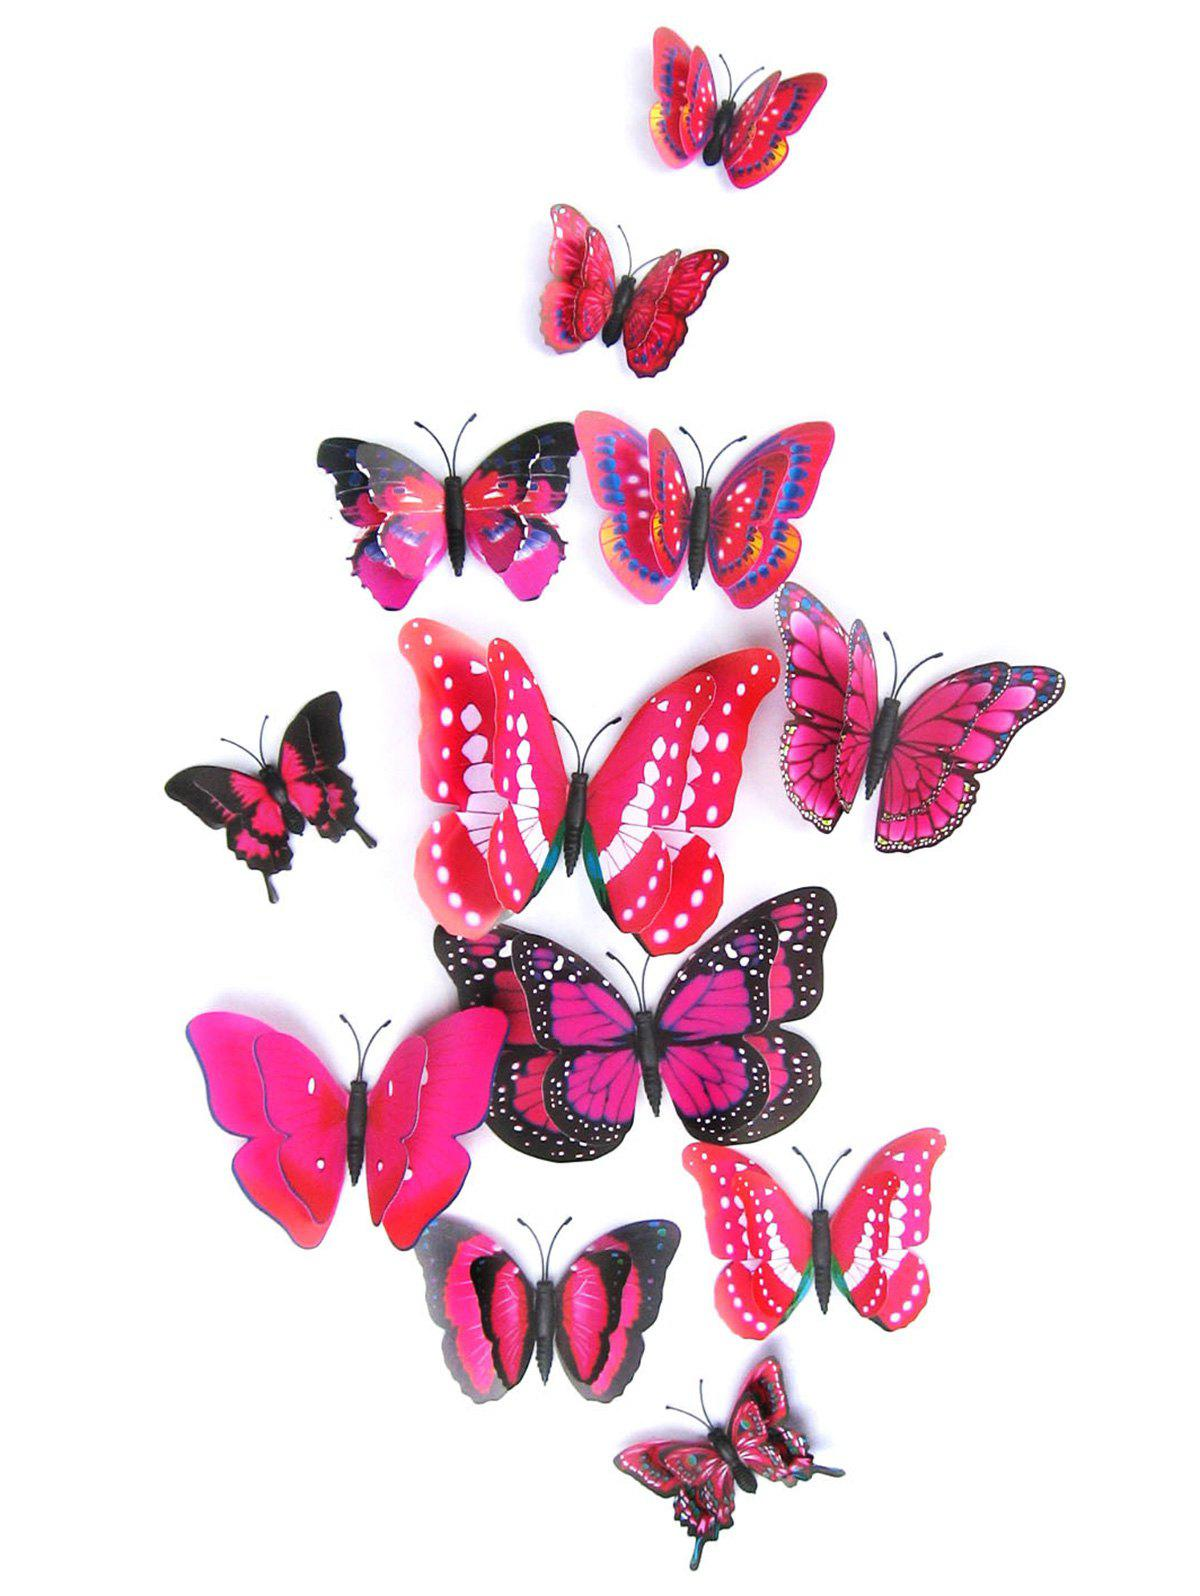 12Pcs/Set Magnet DIY 3D Butterflies PVC Wall StickersHOME<br><br>Color: ROSE MADDER; Wall Sticker Type: 3D Wall Stickers; Functions: Decorative Wall Stickers; Theme: Animals,Shapes; Material: PVC; Feature: Removable; Weight: 0.0864kg; Package Contents: 1 x Butterfly Wall Stickers ?12Pcs/Set?;